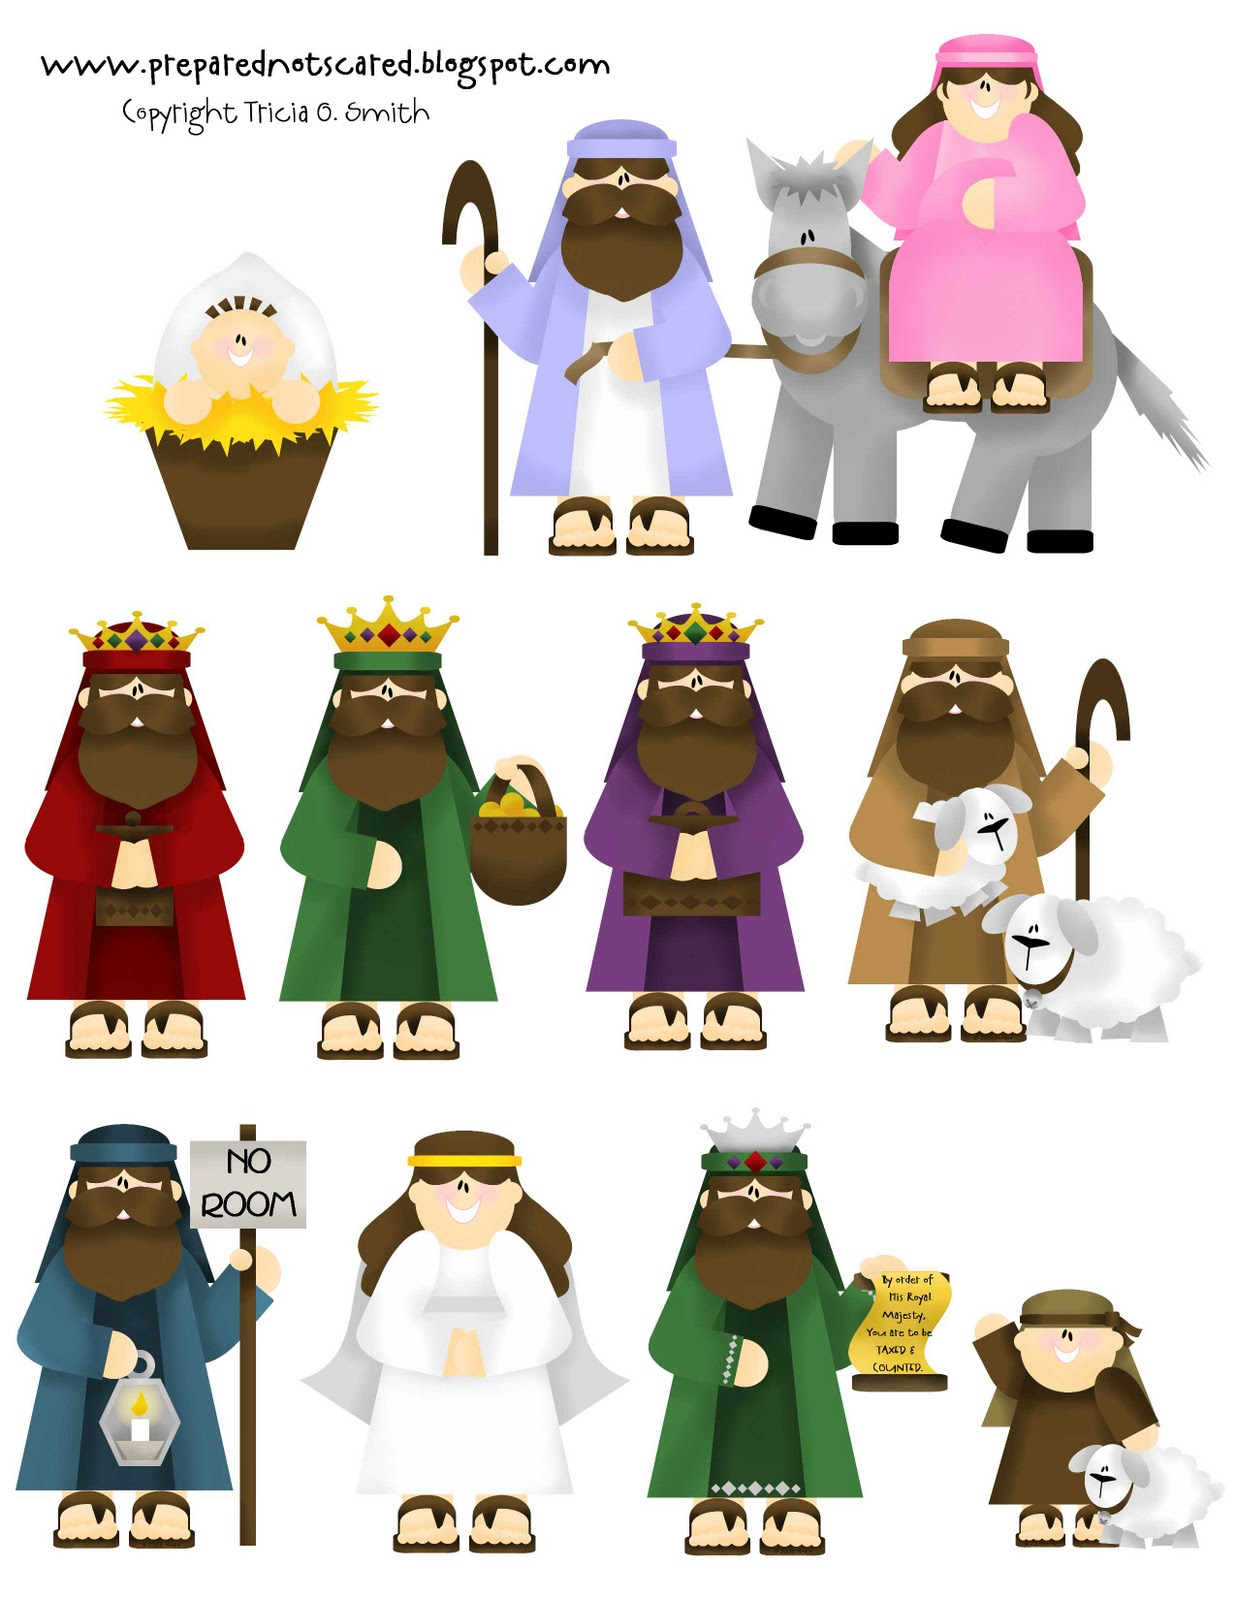 Hilaire image in printable nativity